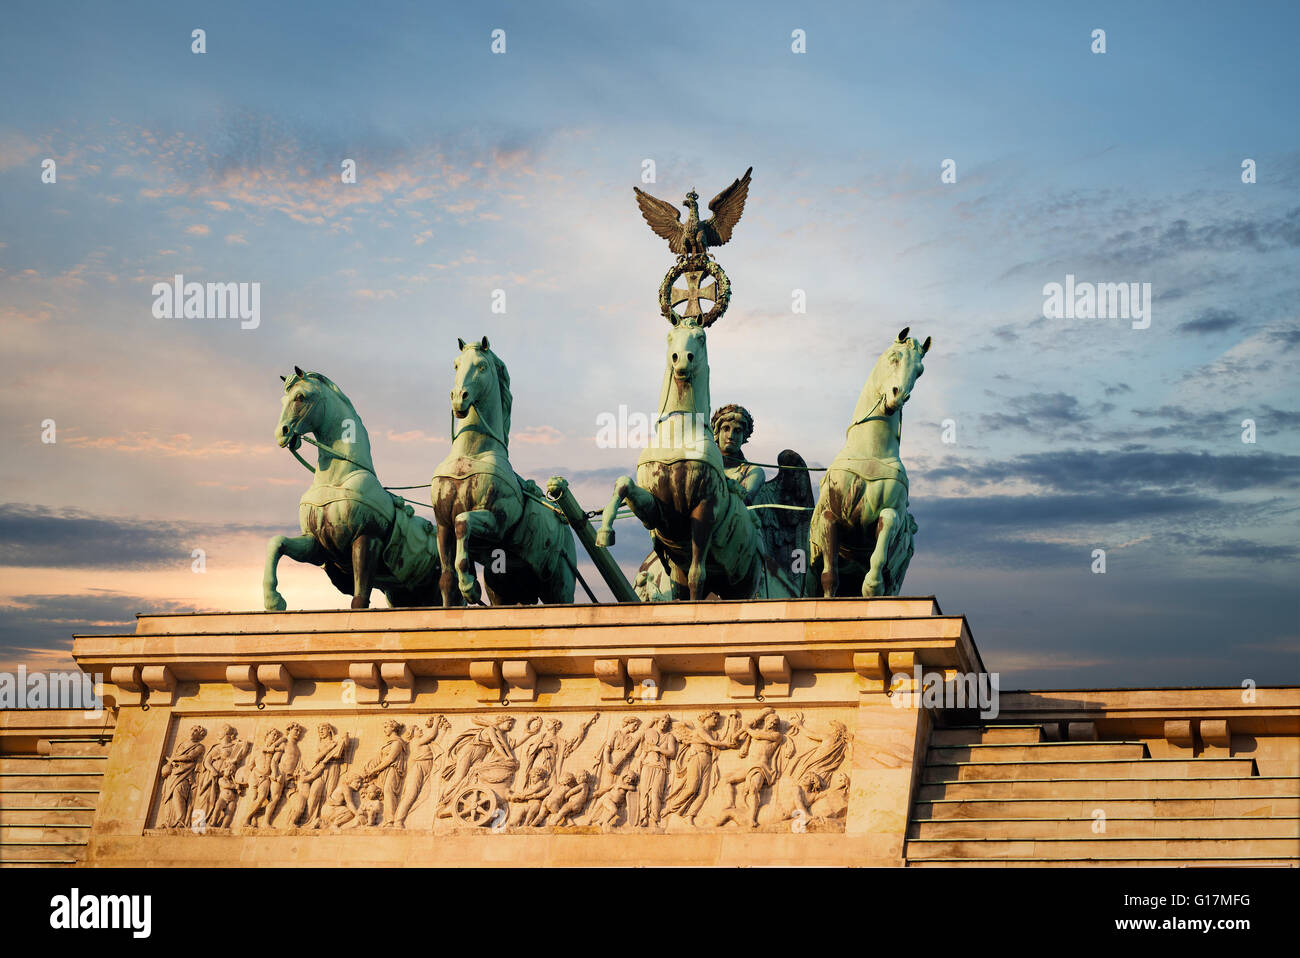 Quadriga and Bas-Relief on top of the Brandenburg Gate in Berlin, Germany with a sunset sky Stock Photo